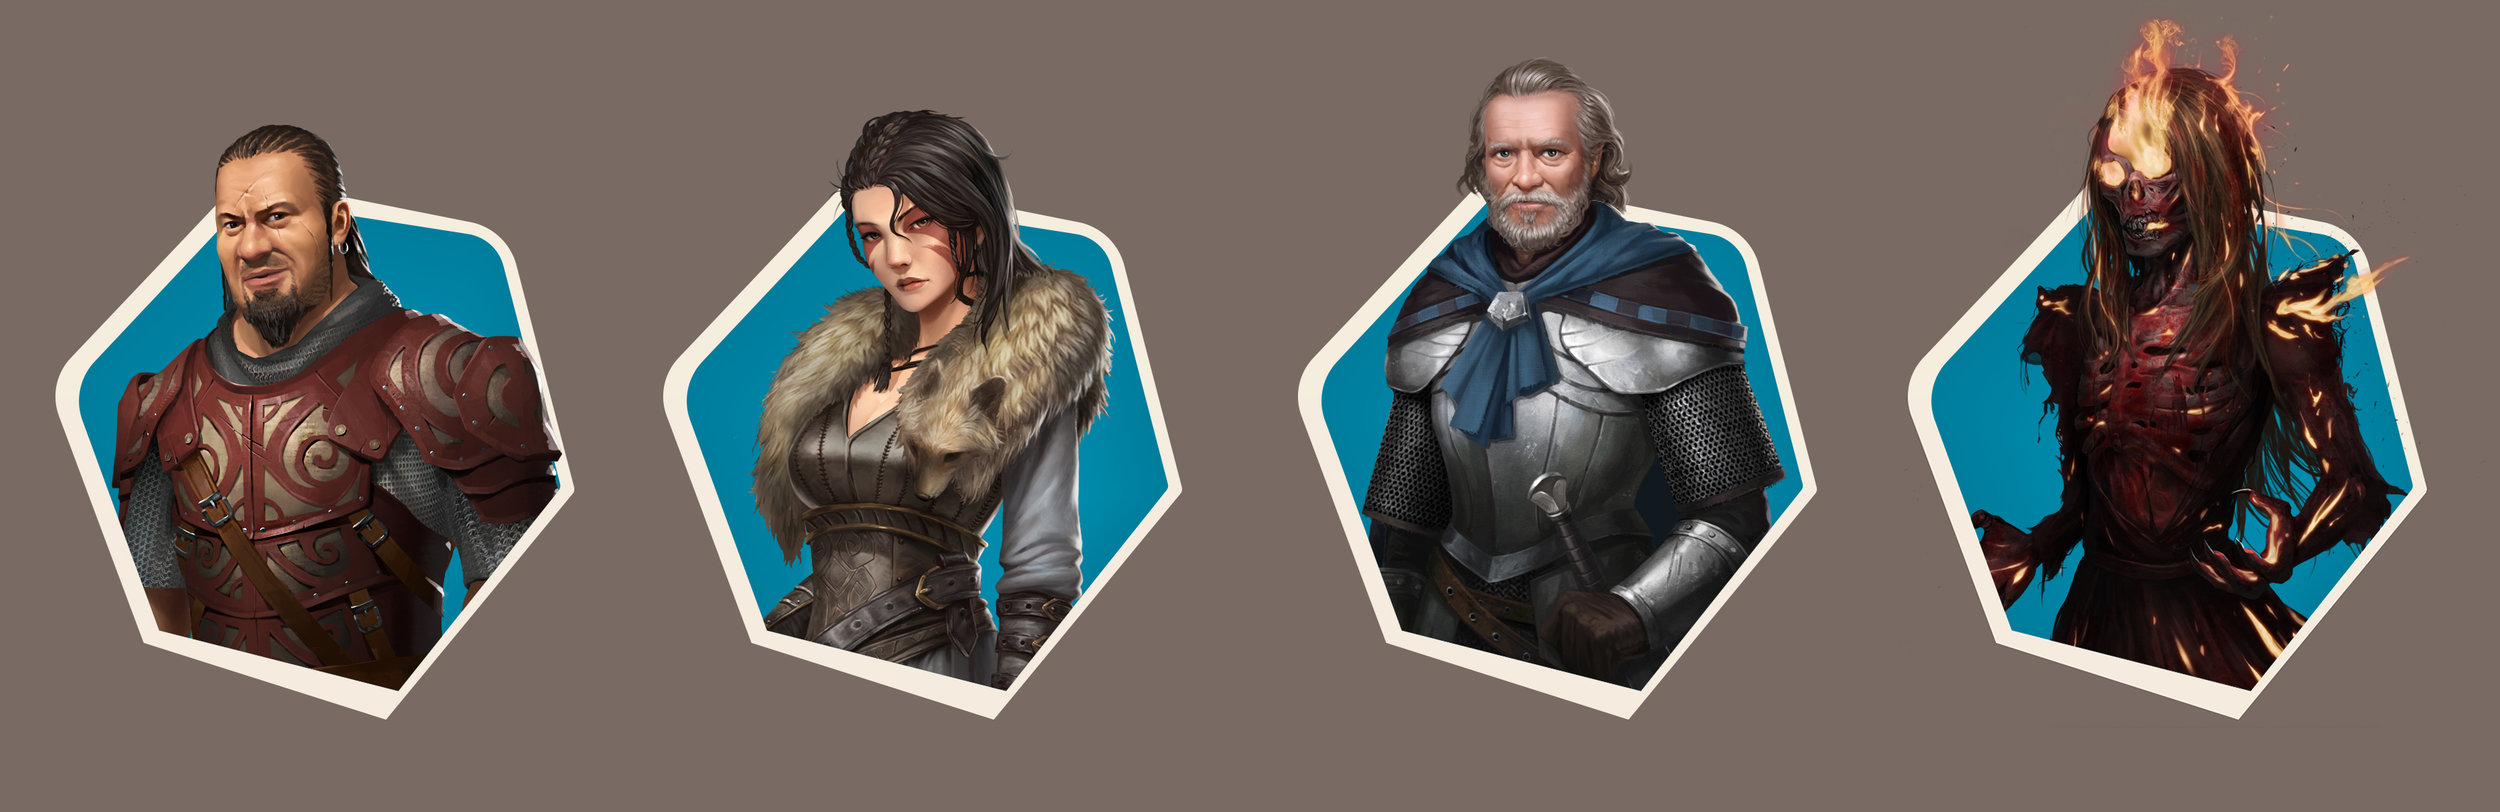 Art and character designs by Concept Art House